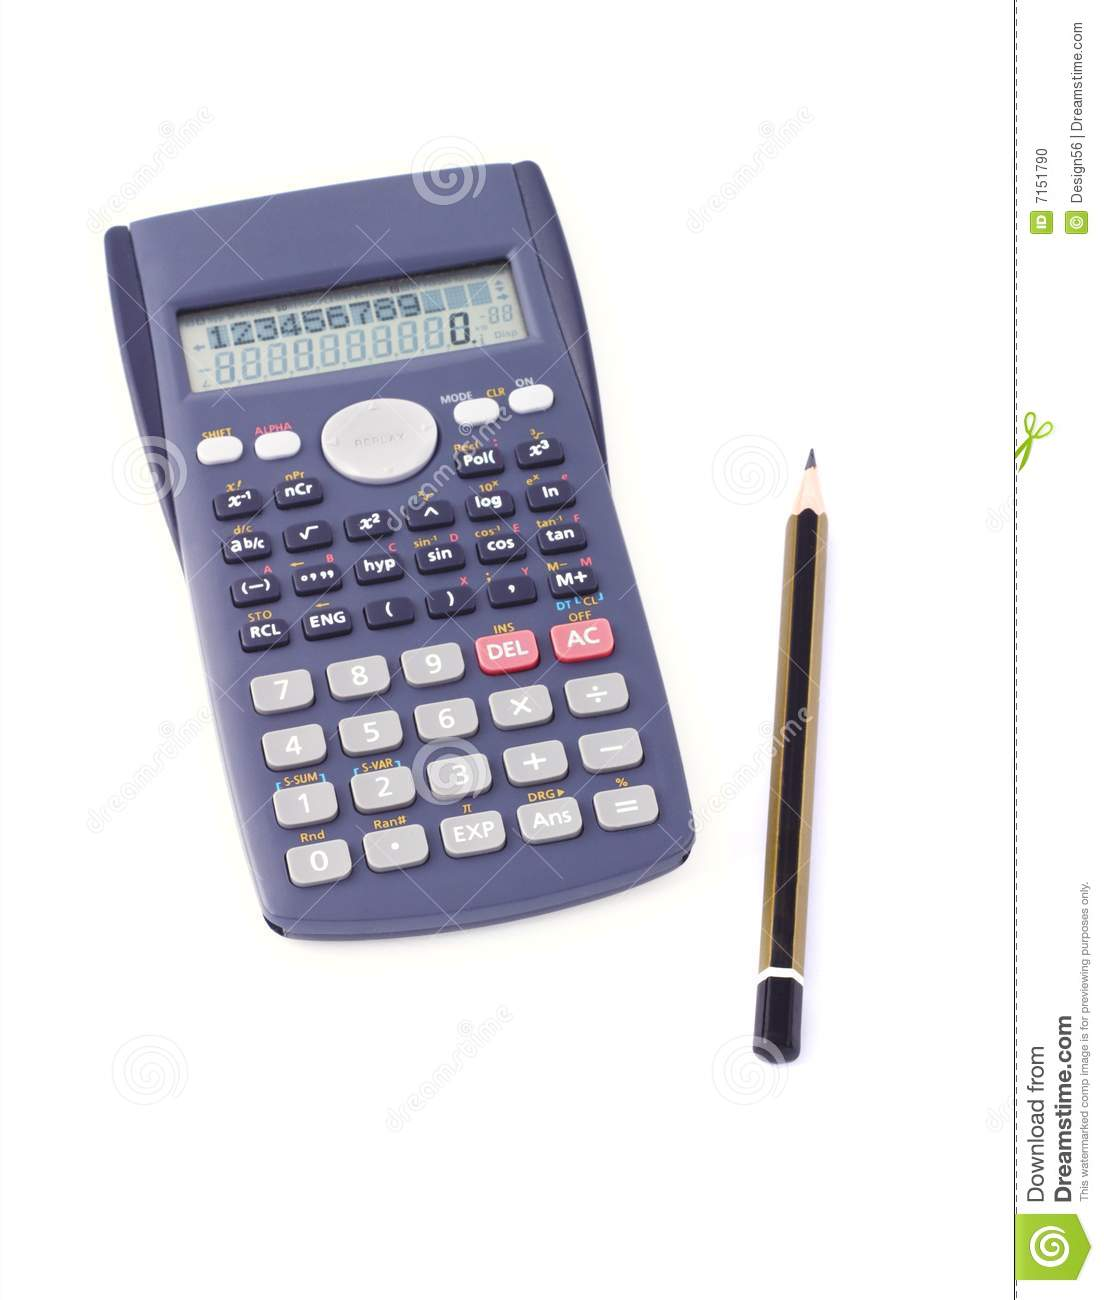 photo wallpaper calculator pencil - photo #3